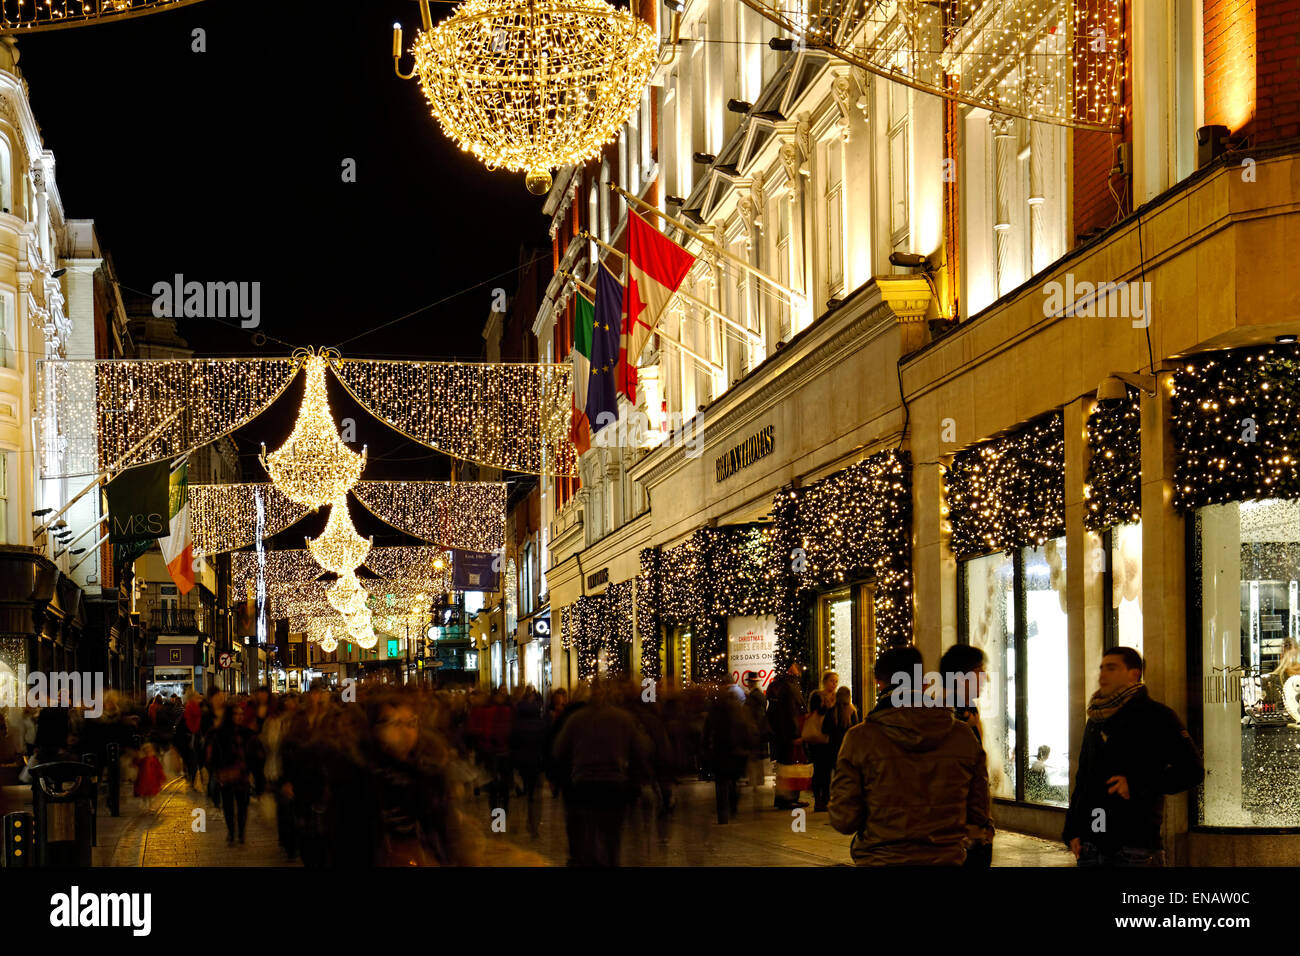 Christmas street decorations at night dublin republic of